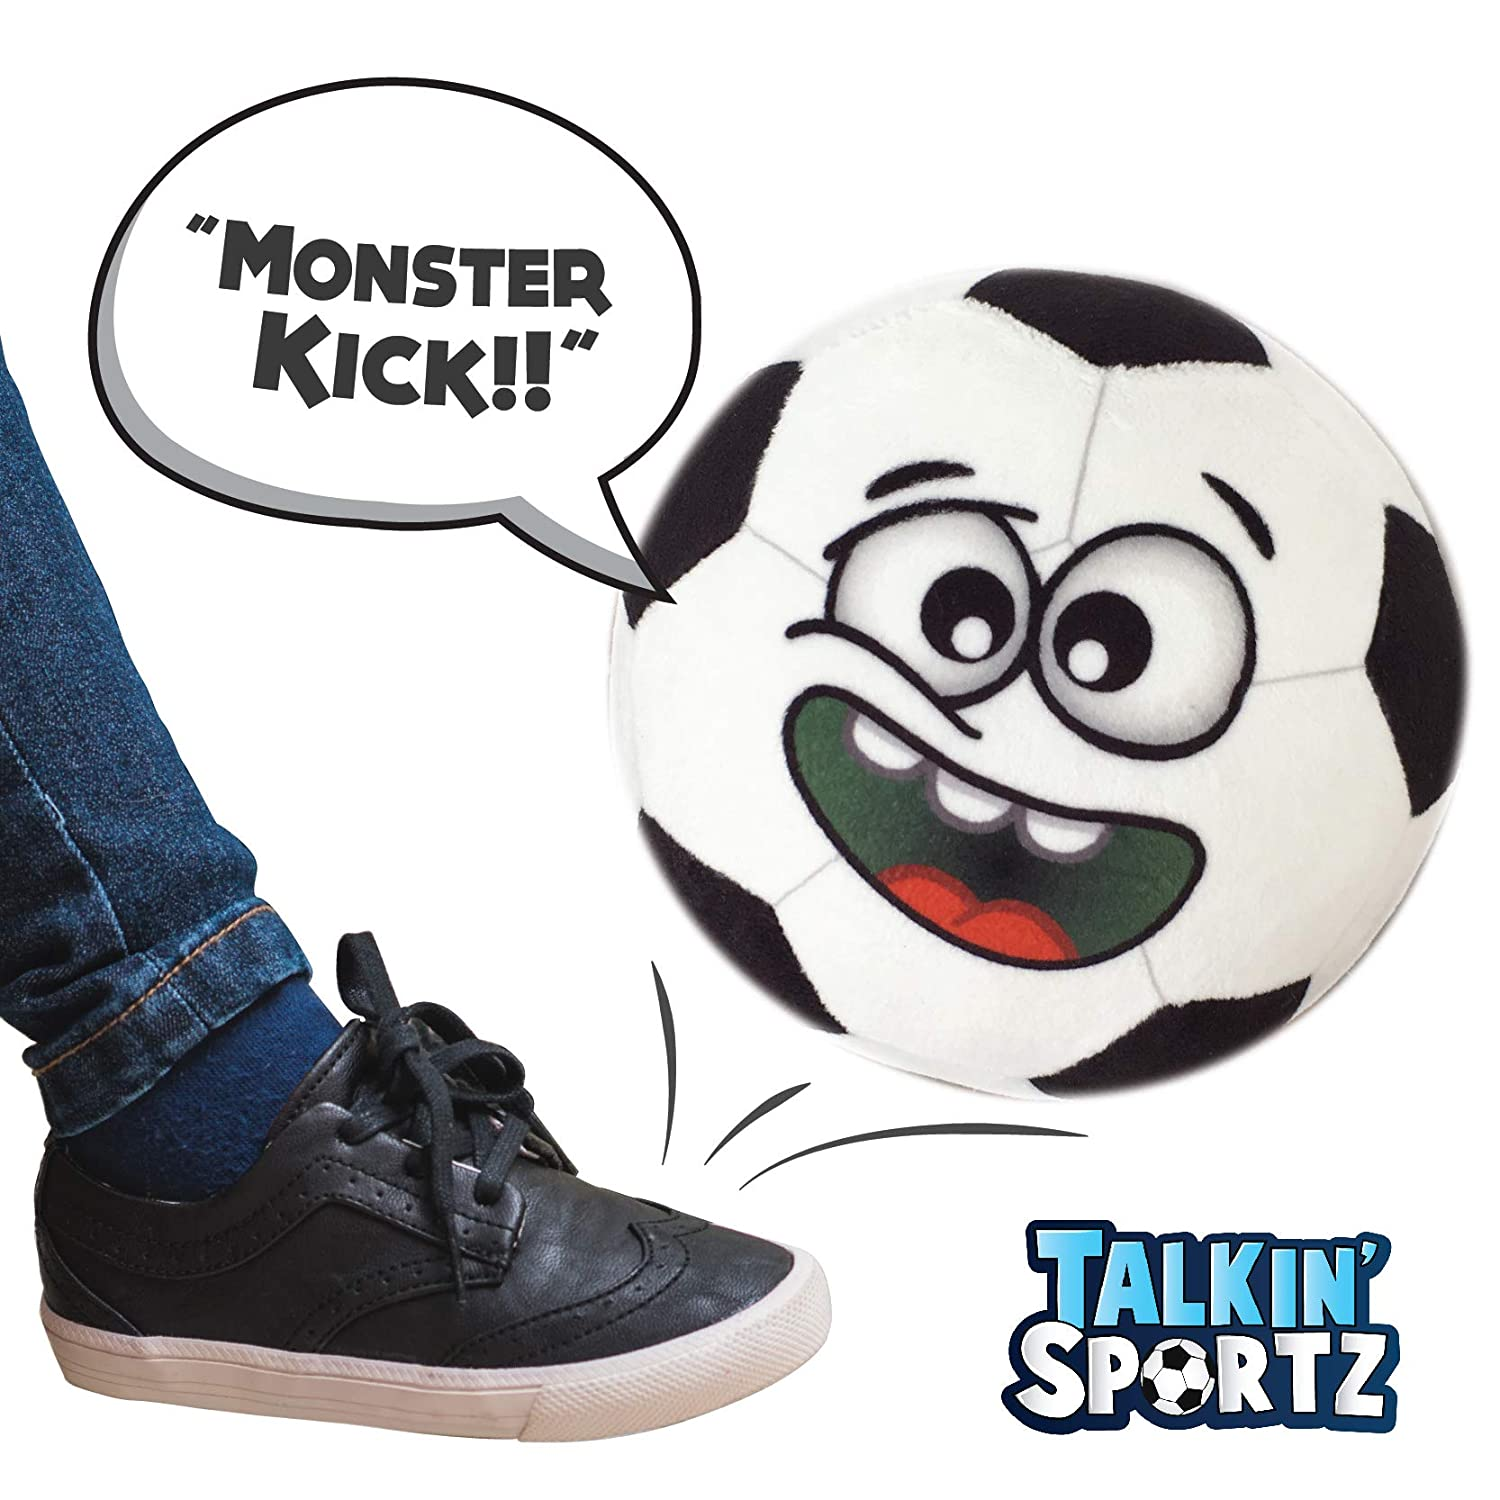 Talkin' Sports, Hilariously Interactive Toy Soccer Ball with Music and Sound FX for Toddlers